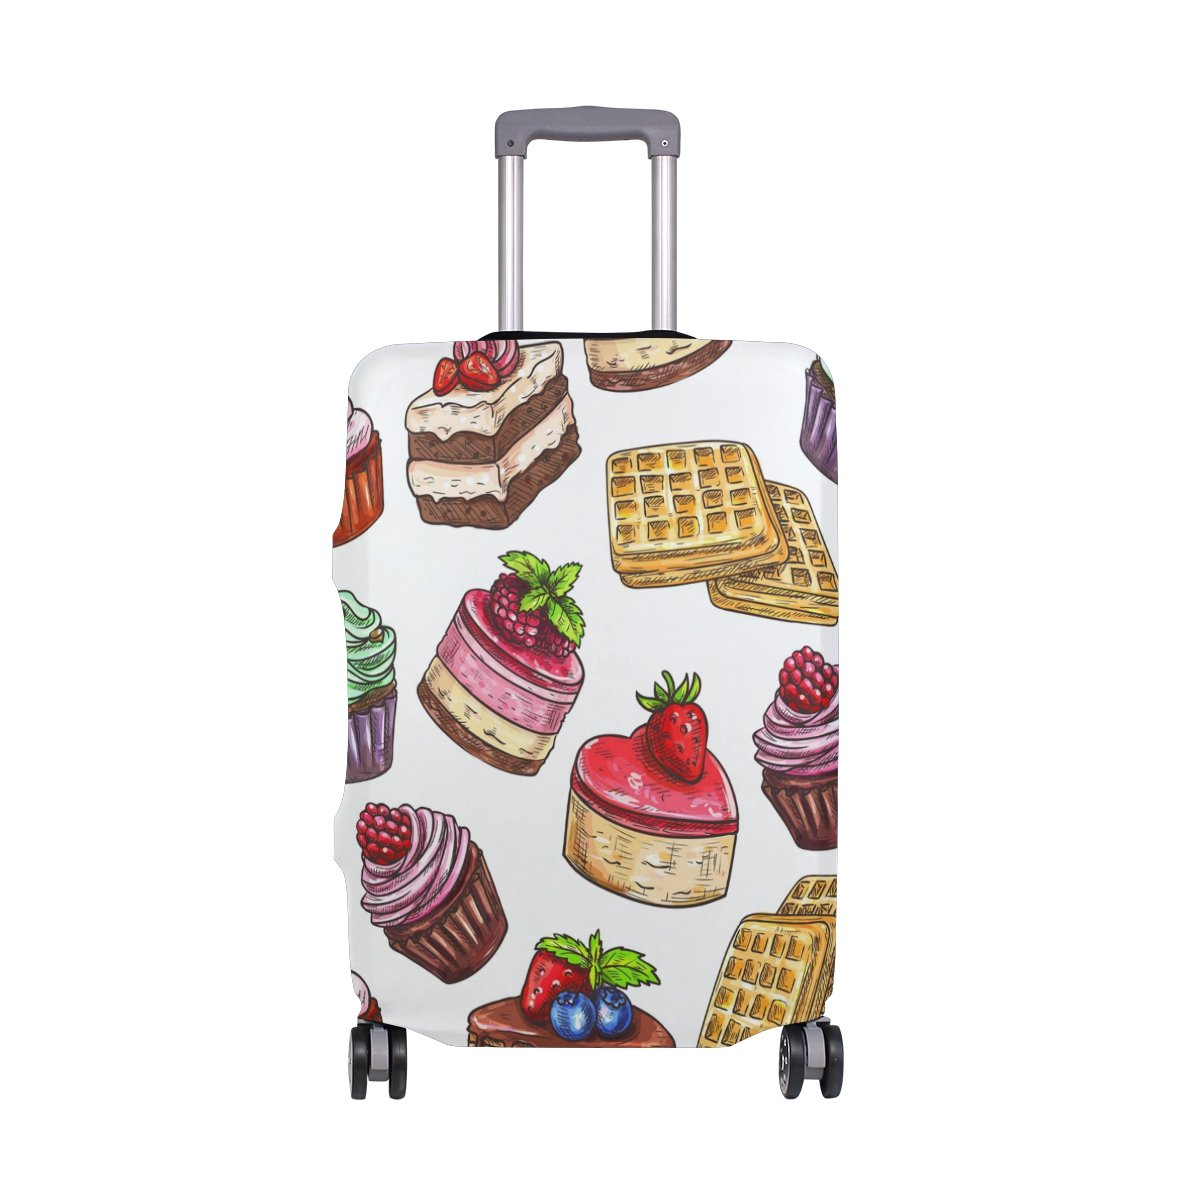 Happy Birthday Cakes Candy Suitcase Luggage Cover Protector for Travel Kids Men Women